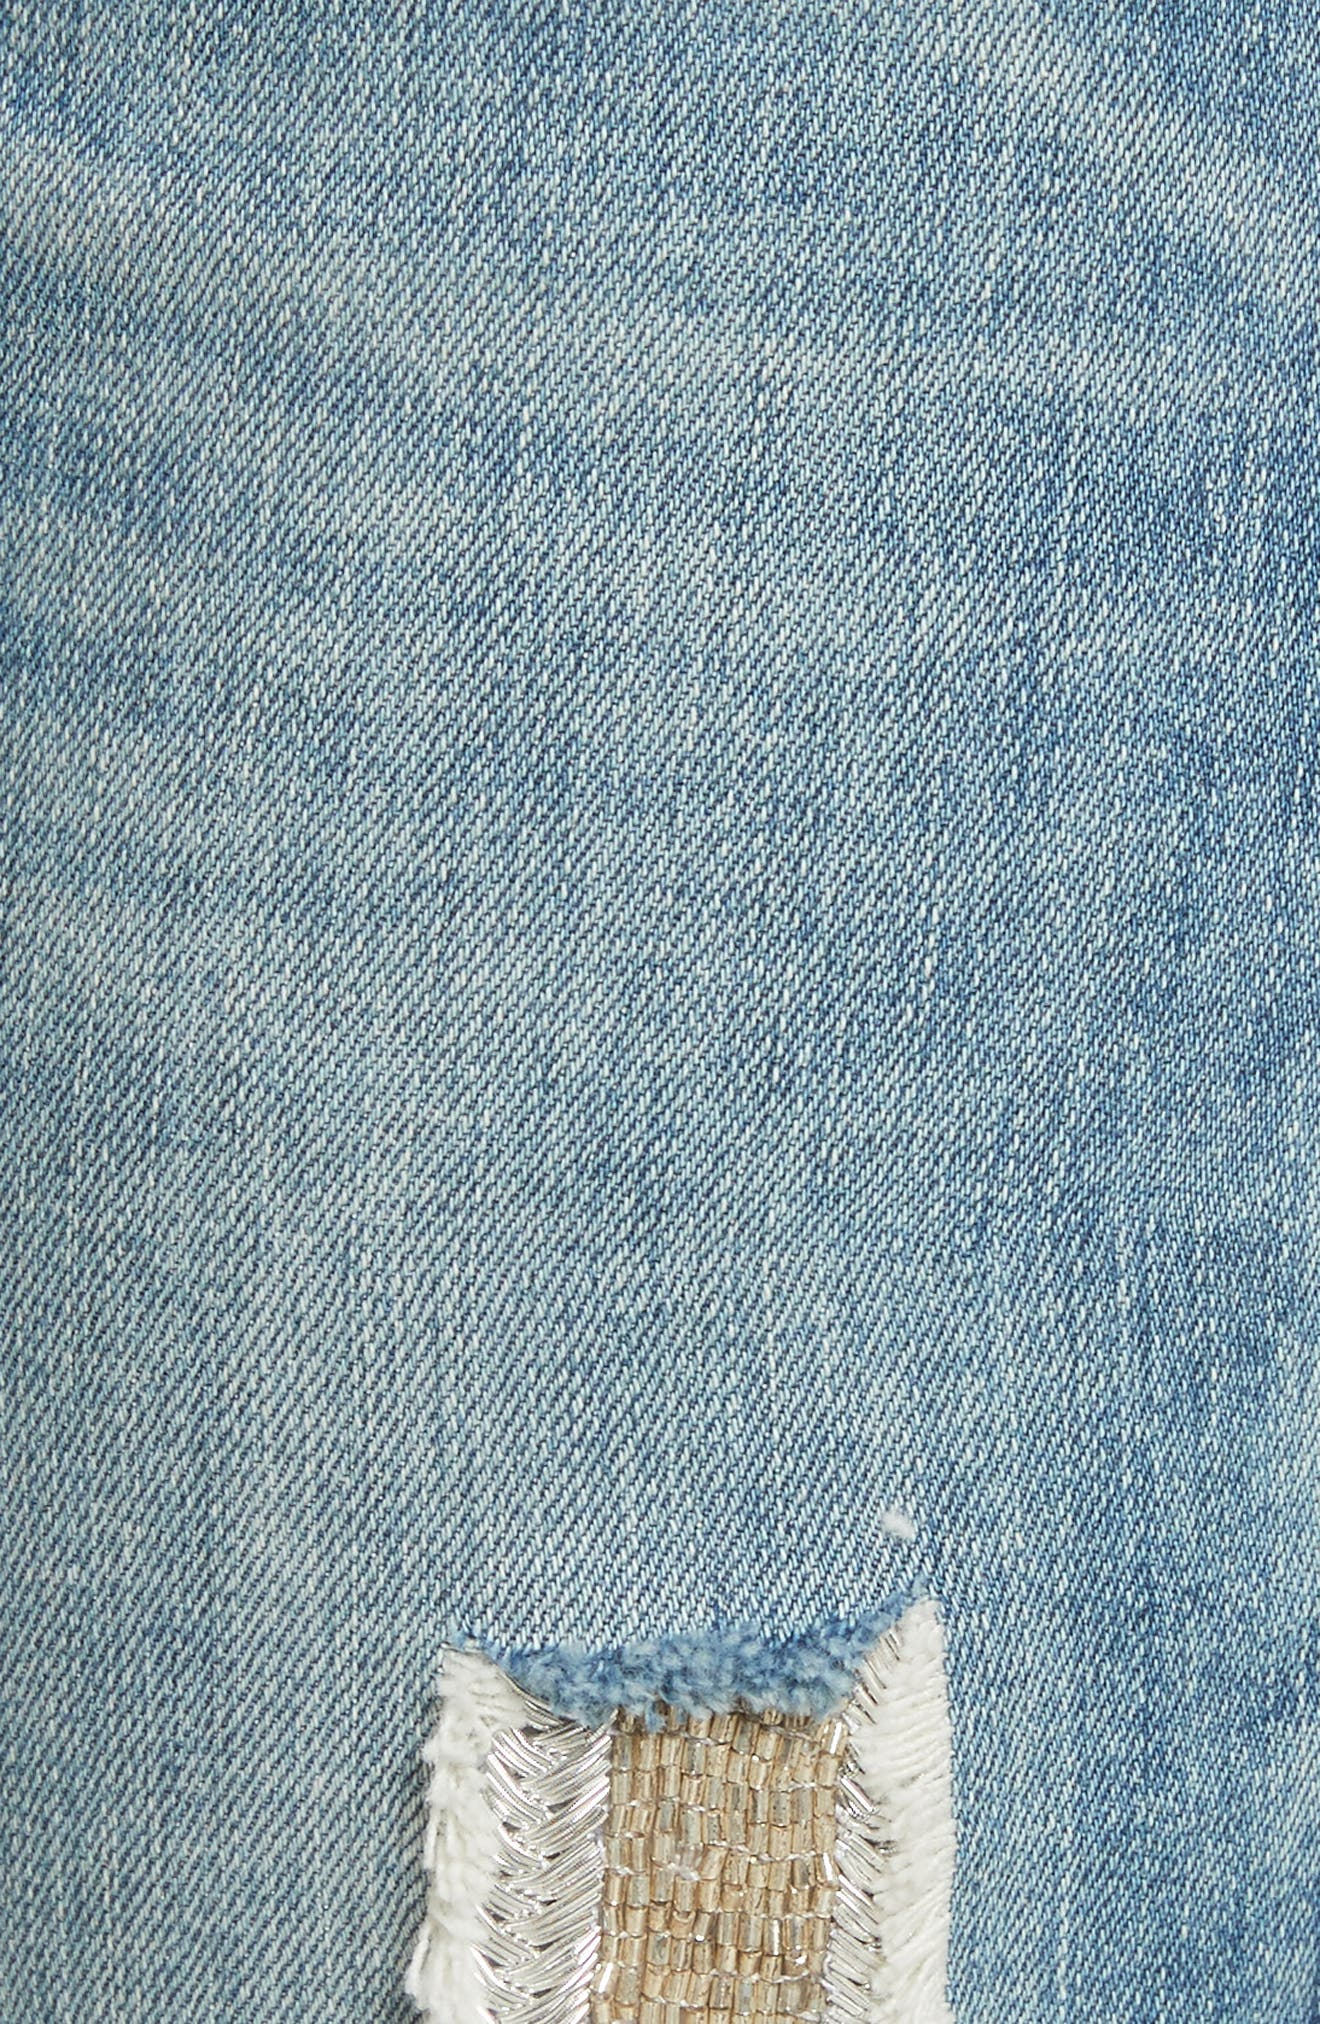 Embellished Boyfriend Jeans,                             Alternate thumbnail 5, color,                             450